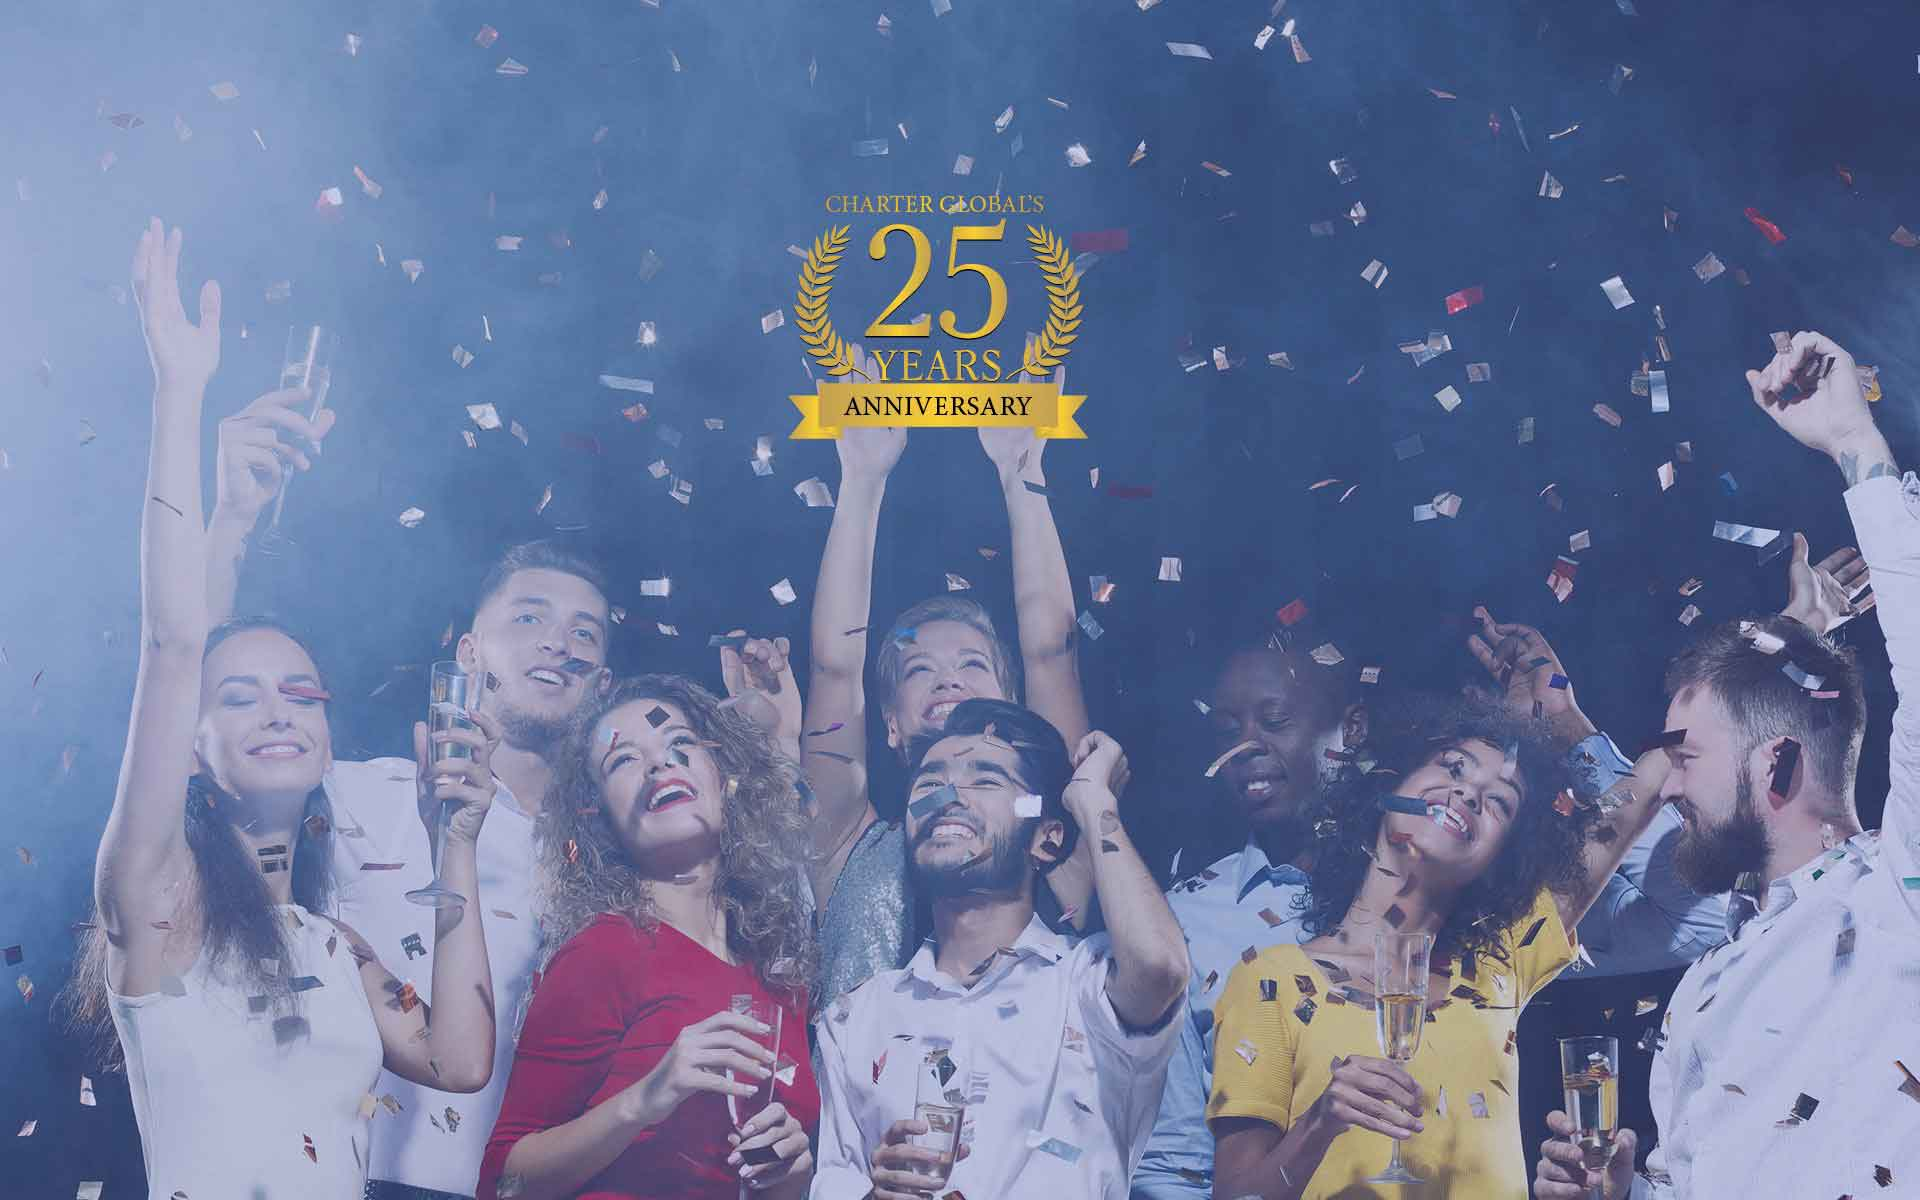 "Charter Global Celebrating <span style=""color:#c5d92e;margin-top: -2px"">25</span> Years Anniversary."